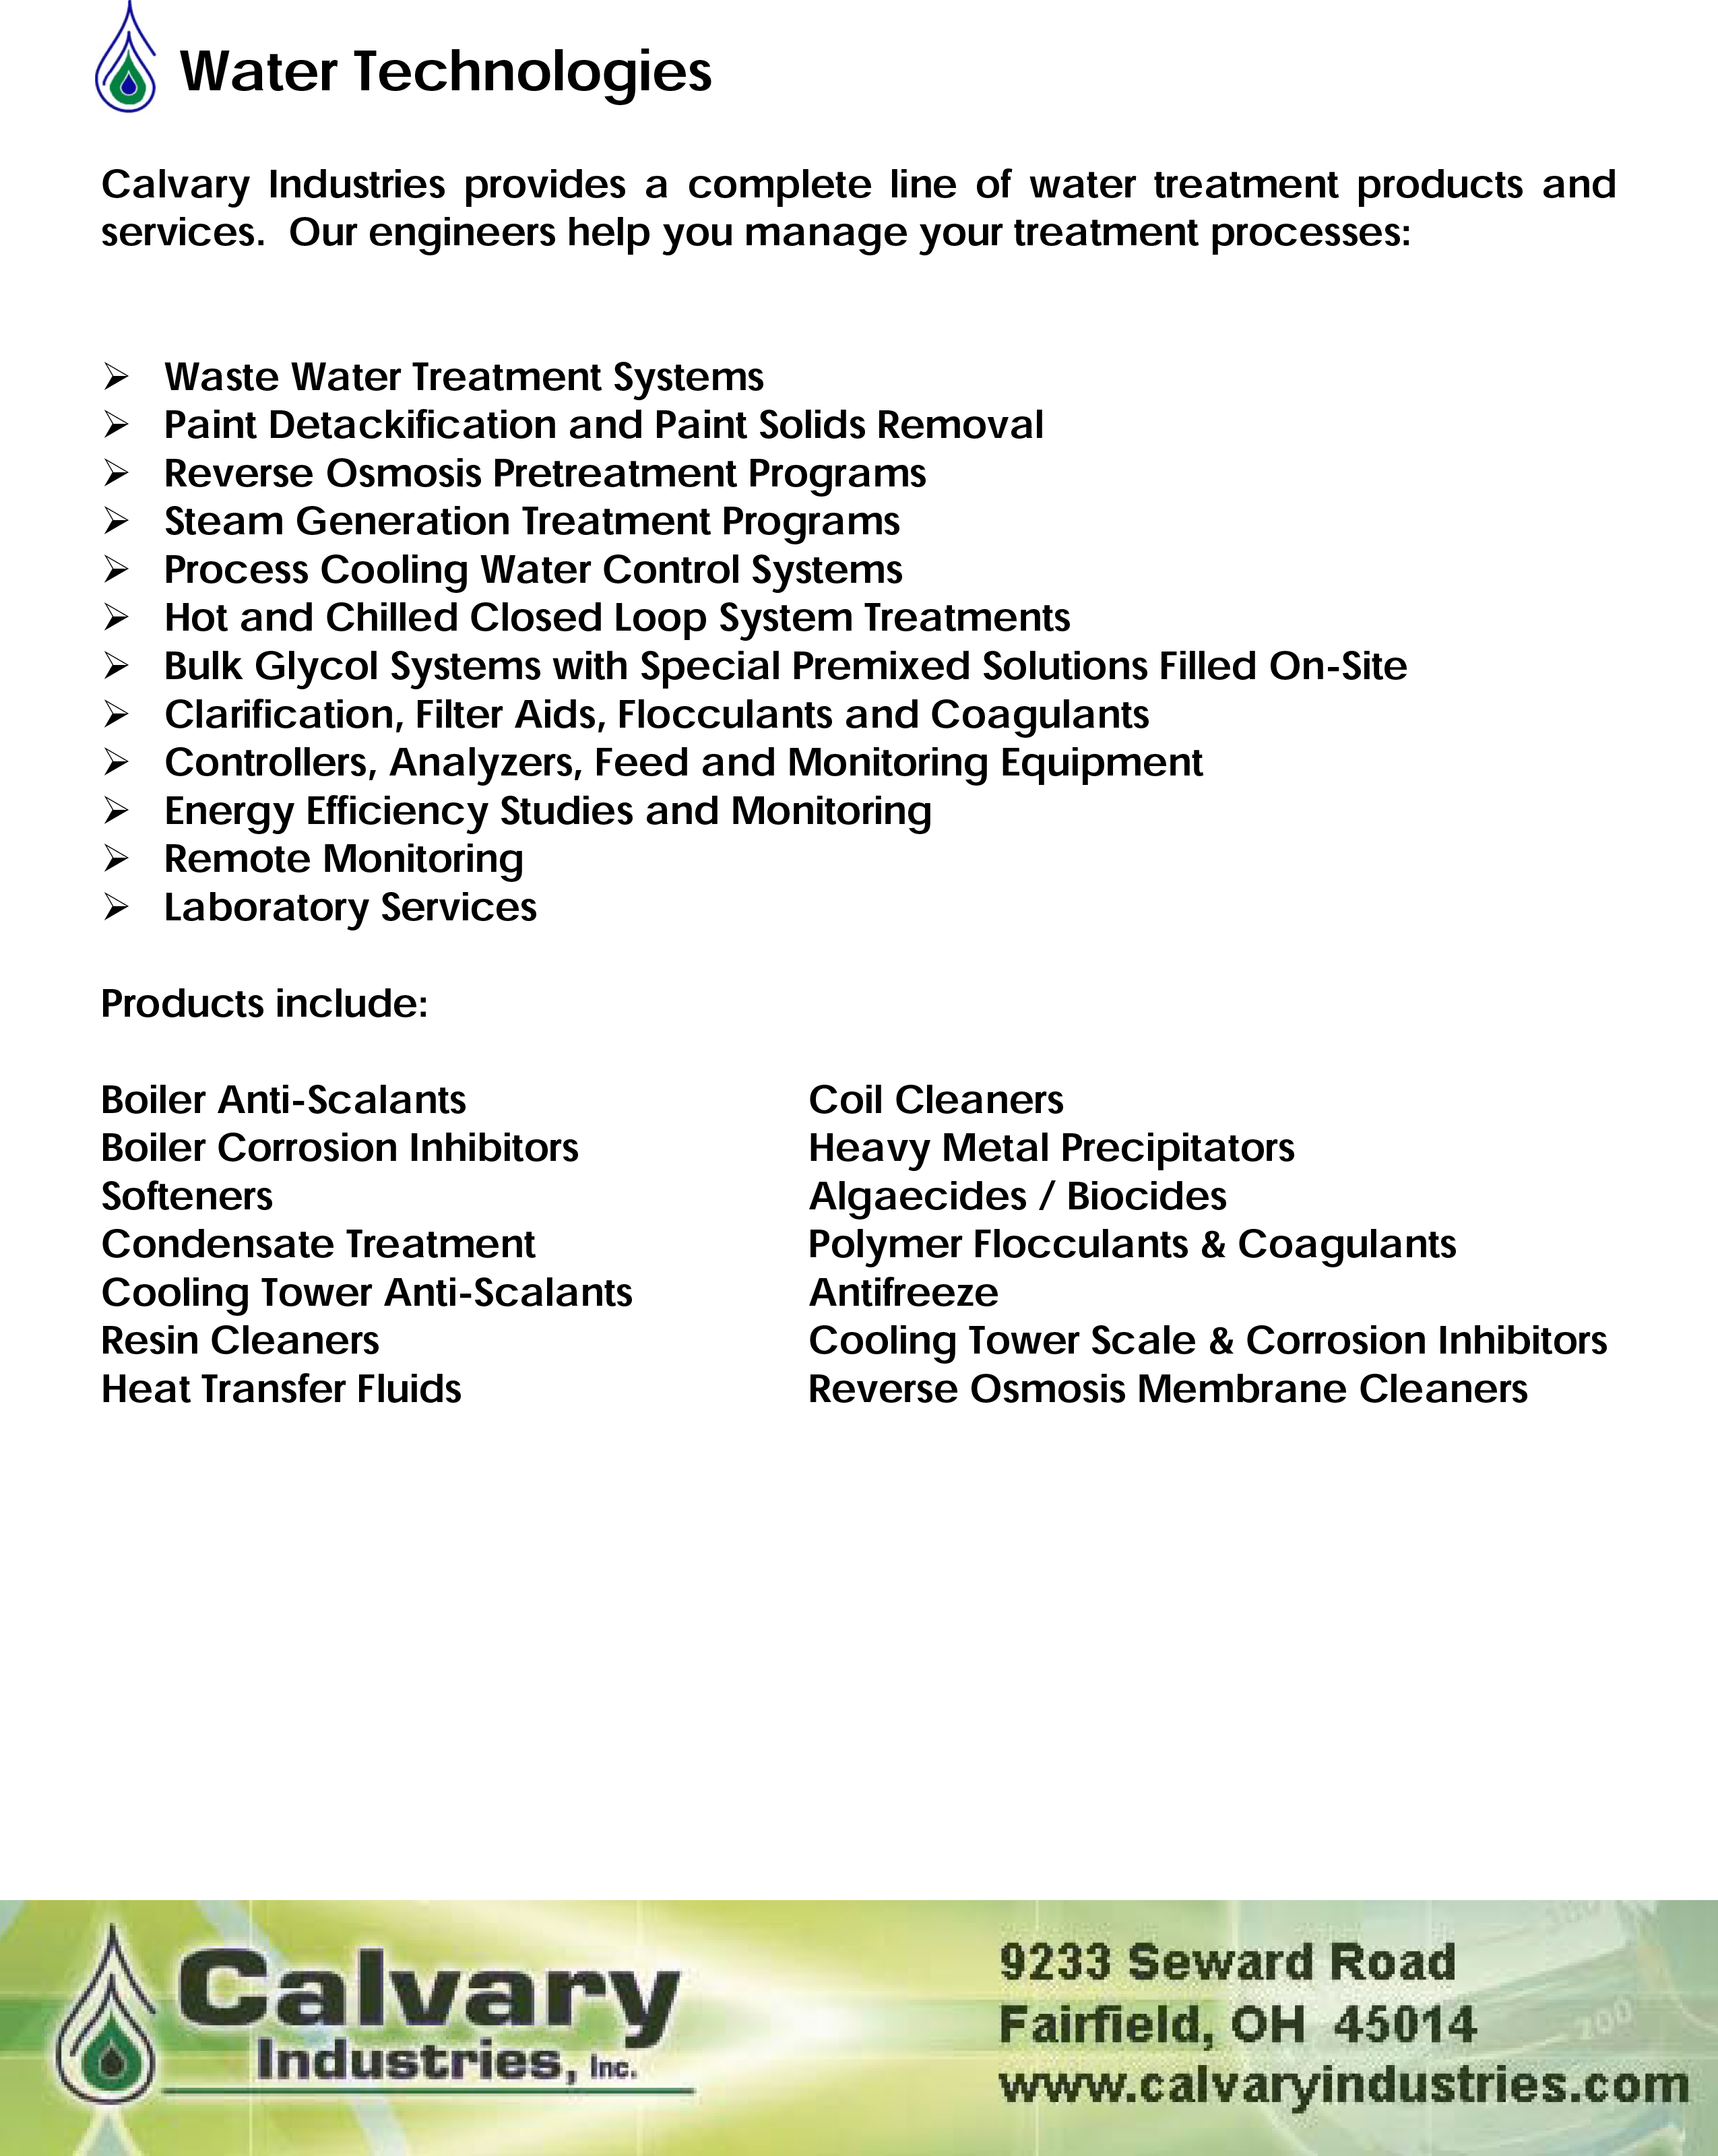 Water-Technologies-brochure